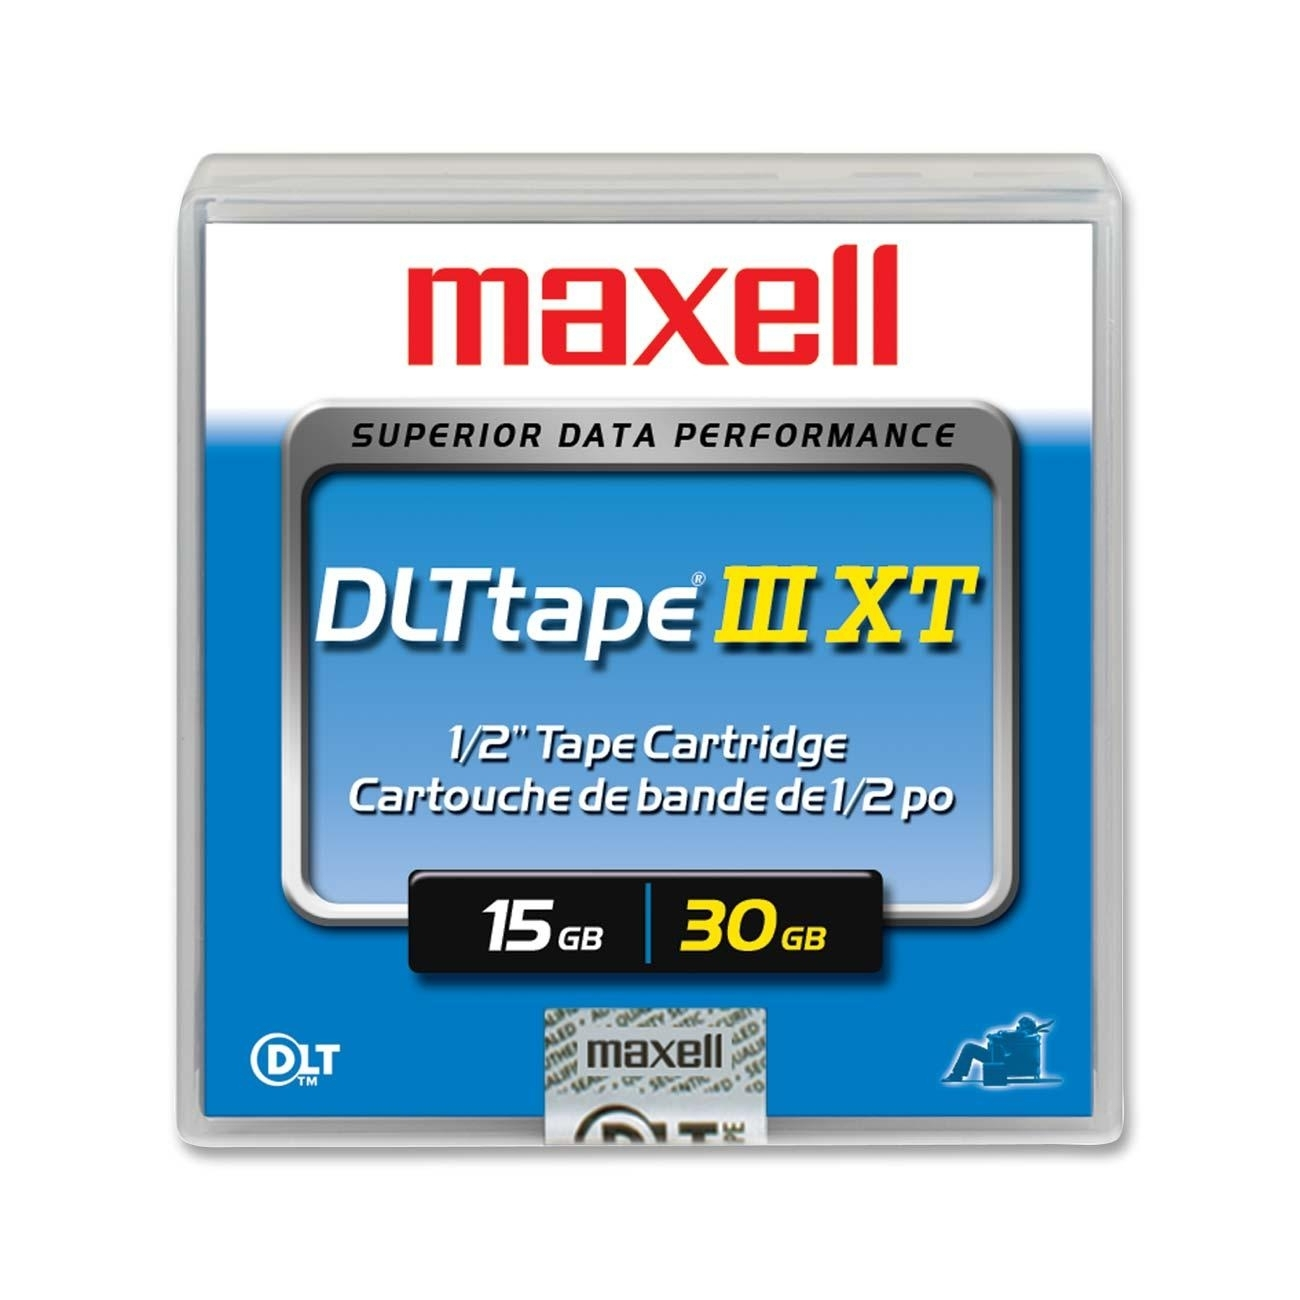 DLTtape IIIXT DLT-2000XT Data Cartridge